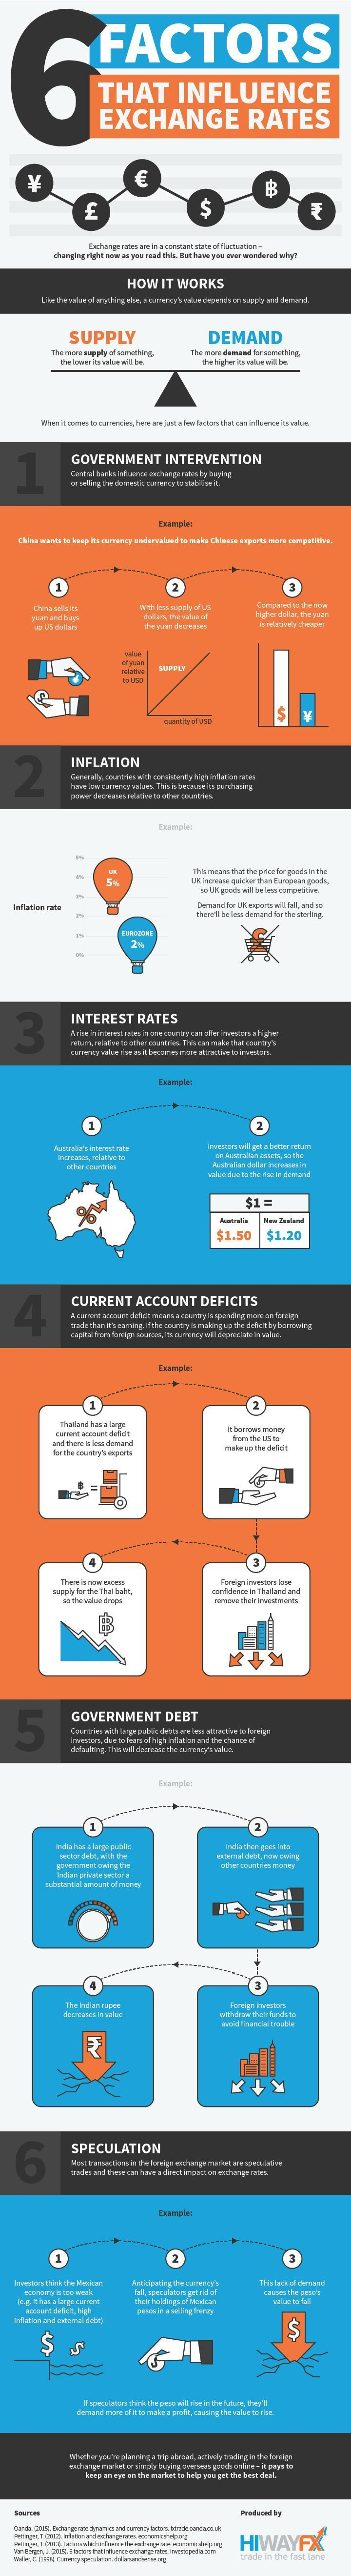 6 Factors that Influence Exchange Rates #infographic #Finance #Money…